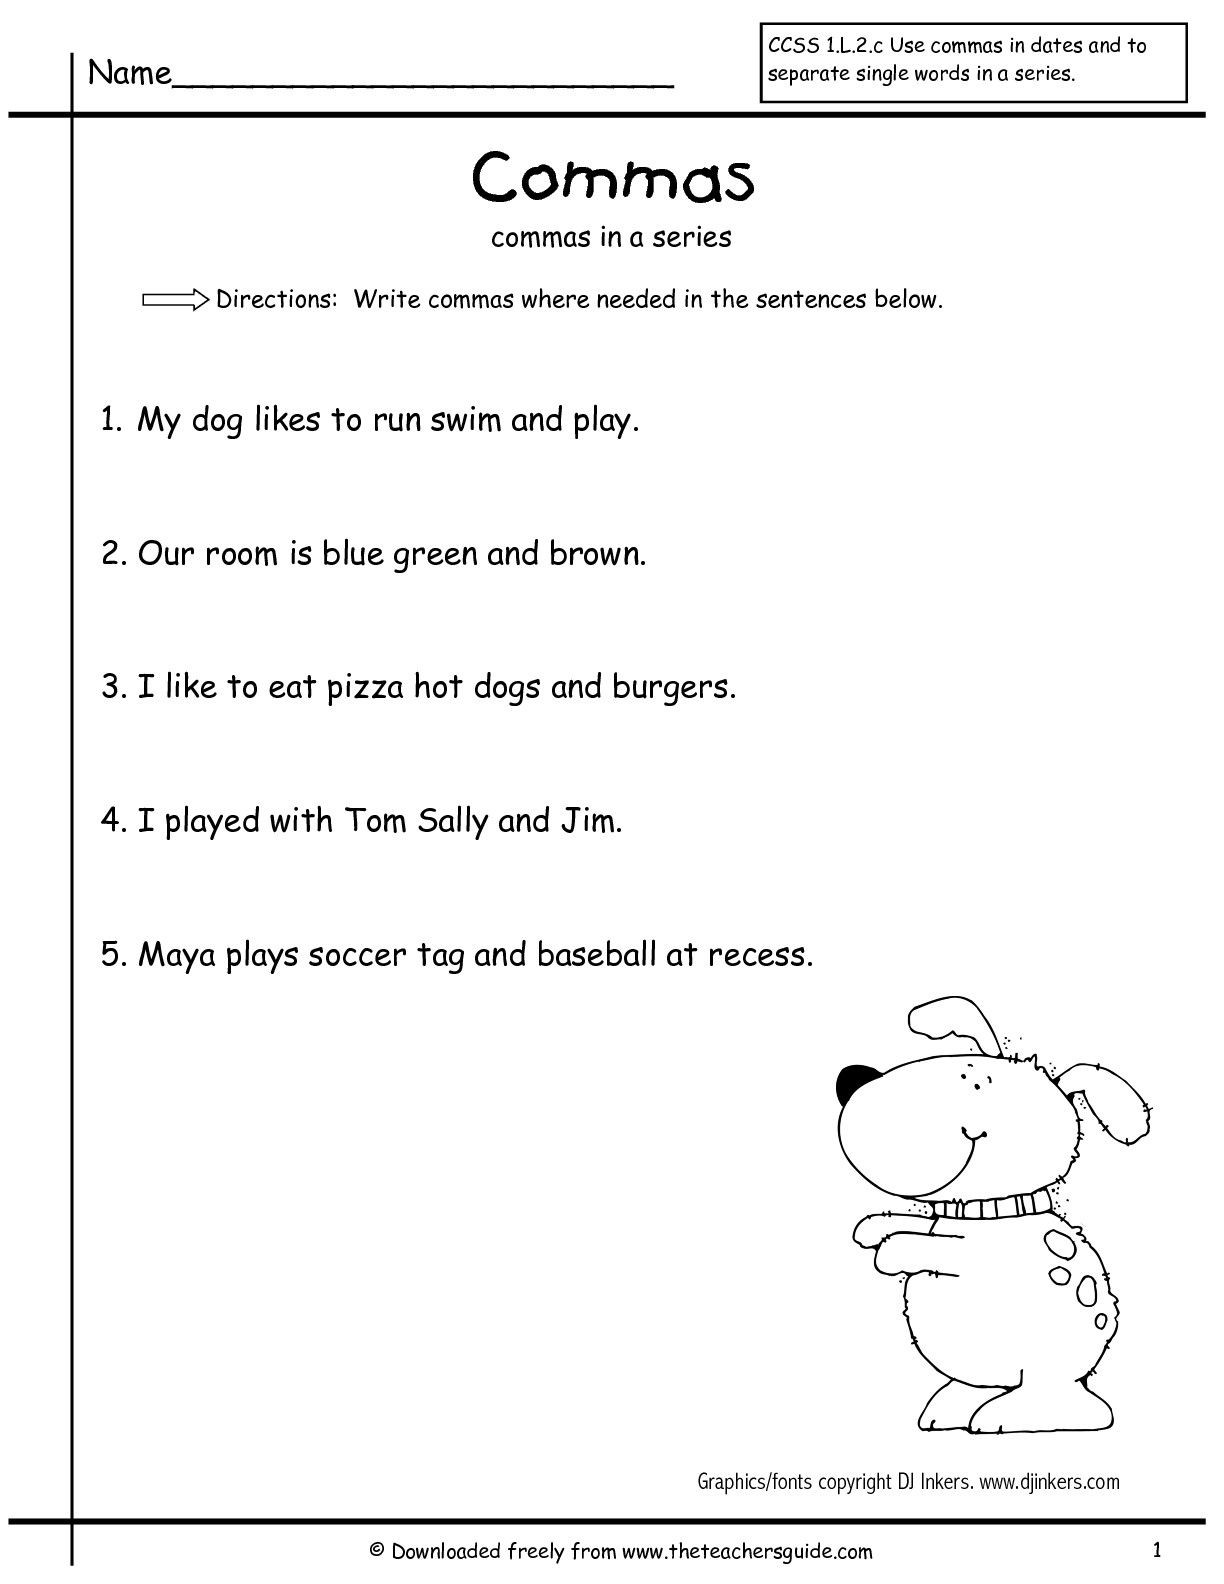 Sentence Correction Worksheets 2nd Grade Masinseriesfirstgrade2 001 001 1224—1584